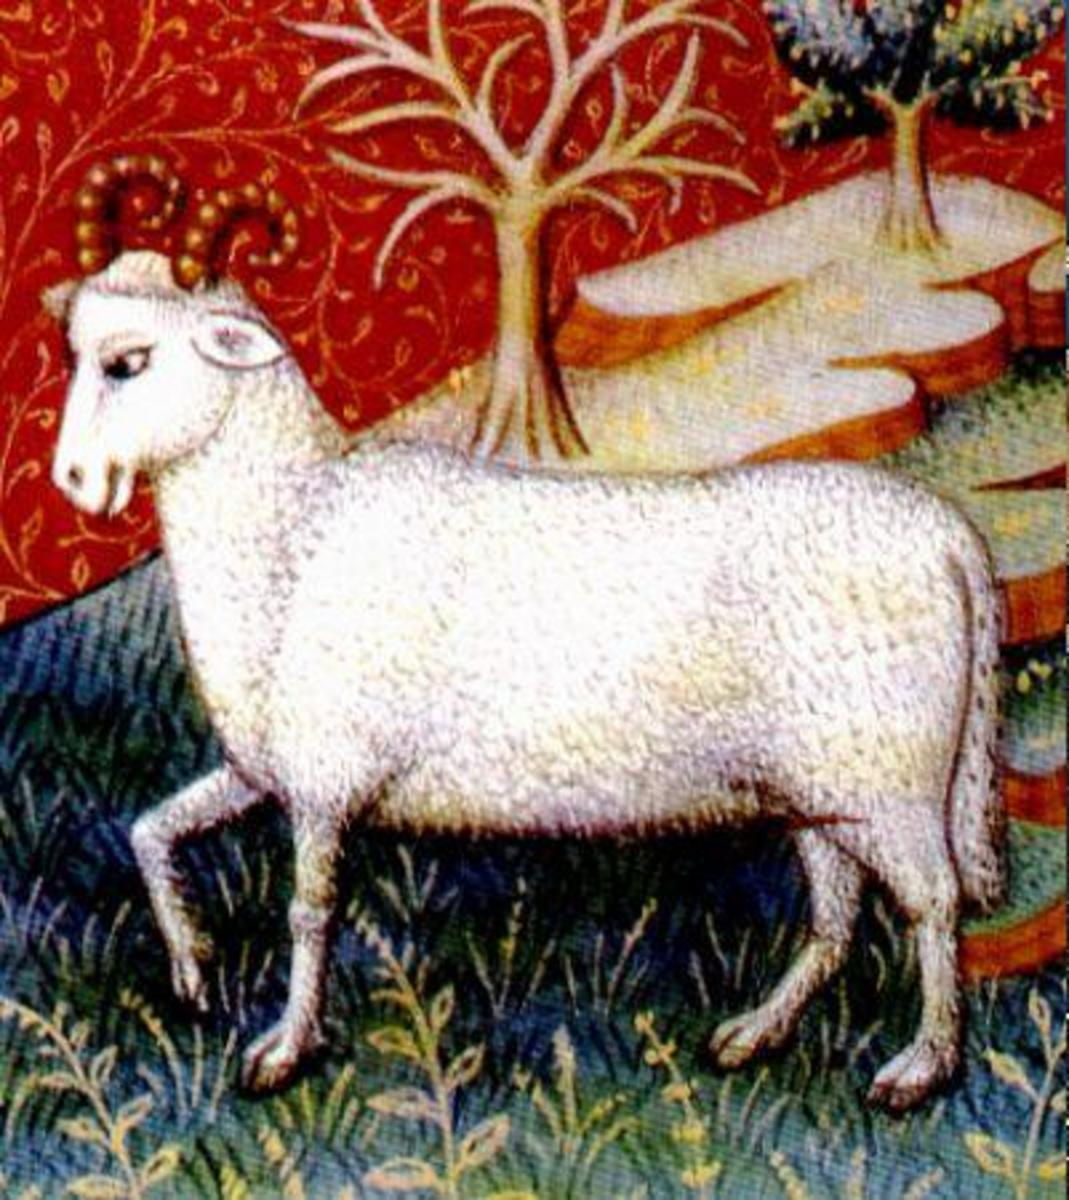 The ram represents male fertility, courage, and strength.